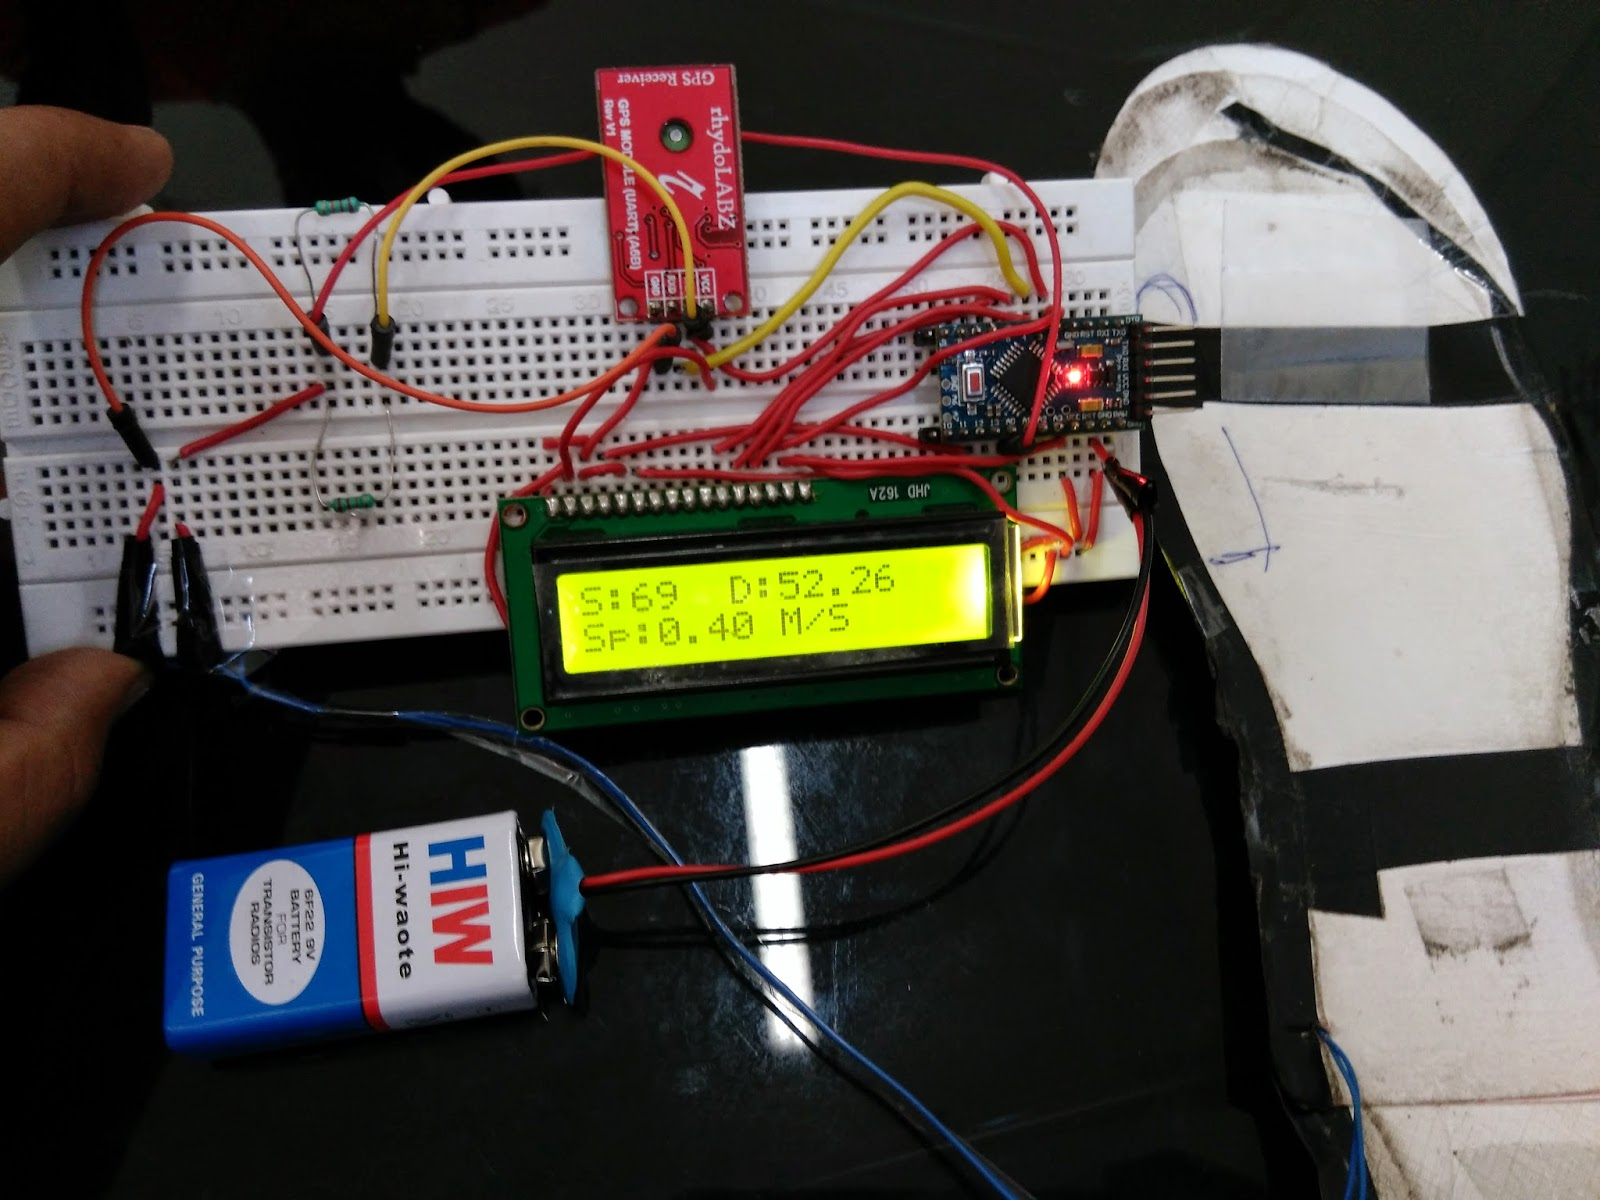 Oe Pedometer Iedprojects2015iiitd Interfacing Tripleaxis Accelerometer With Atmega 16 Circuit Diagram The Shoe